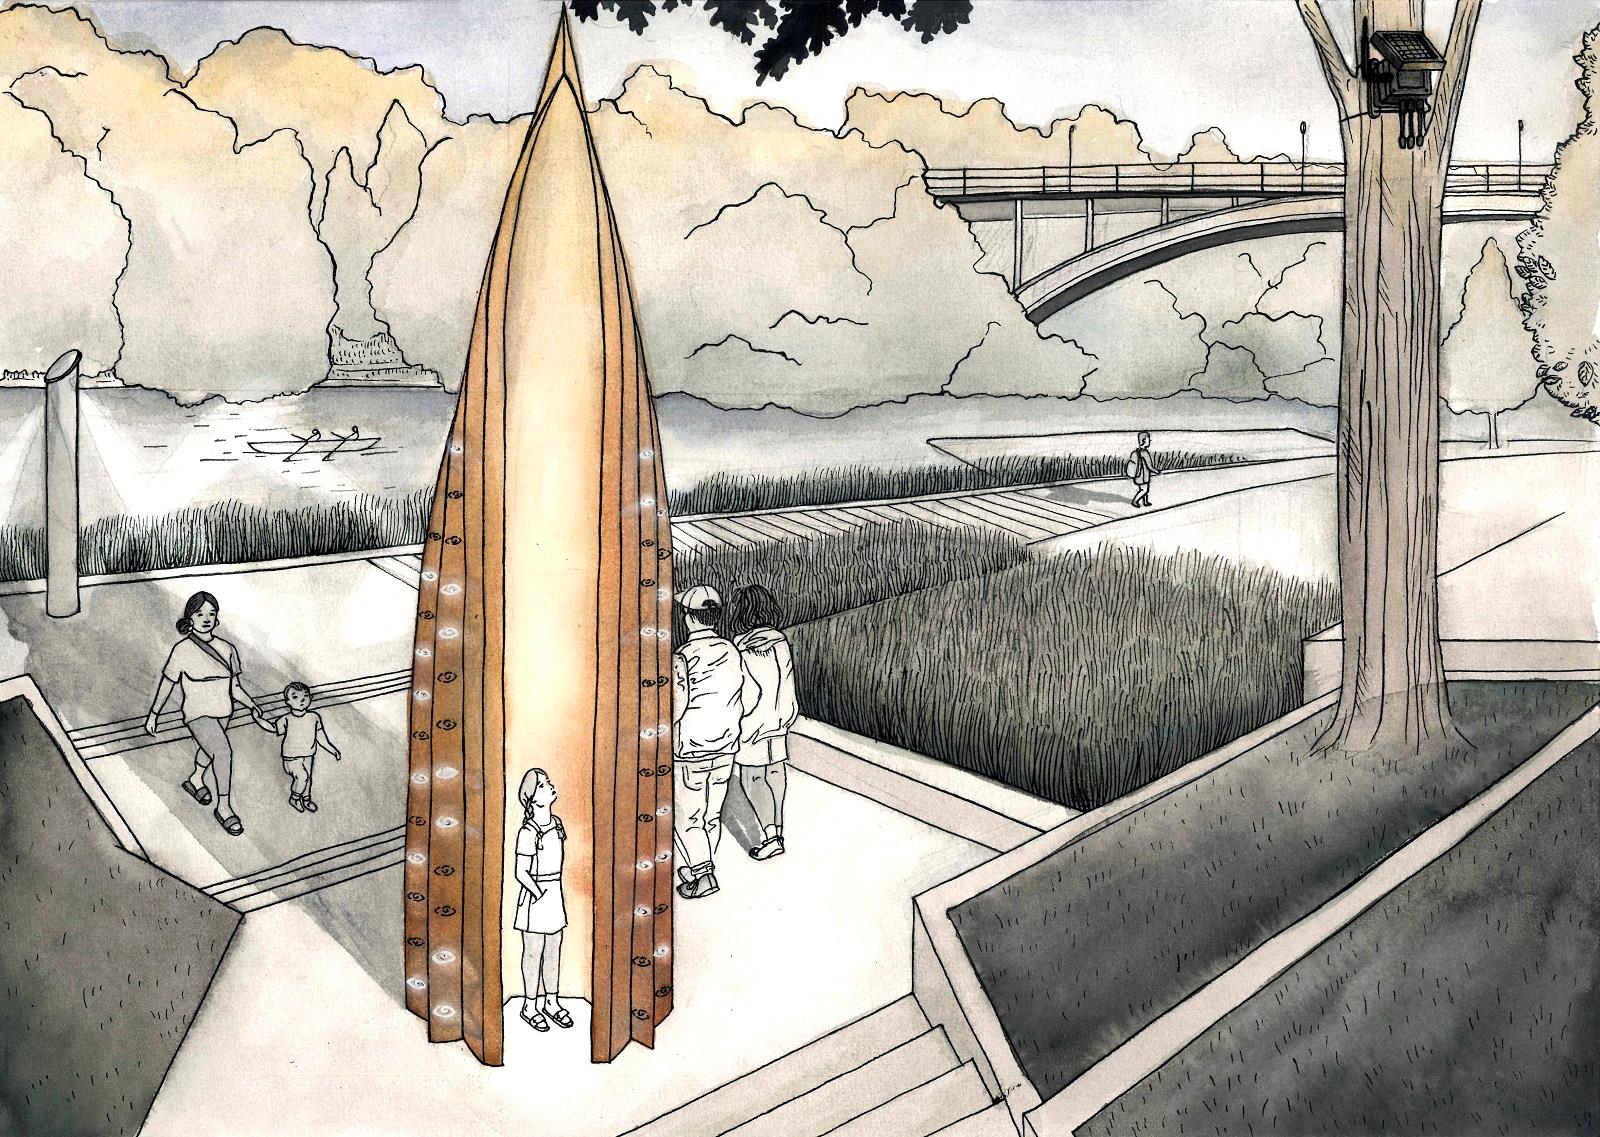 Artist's impression of Tōia Mai, Hamilton's new interactive waka sculpture to be gifted by Wintec.